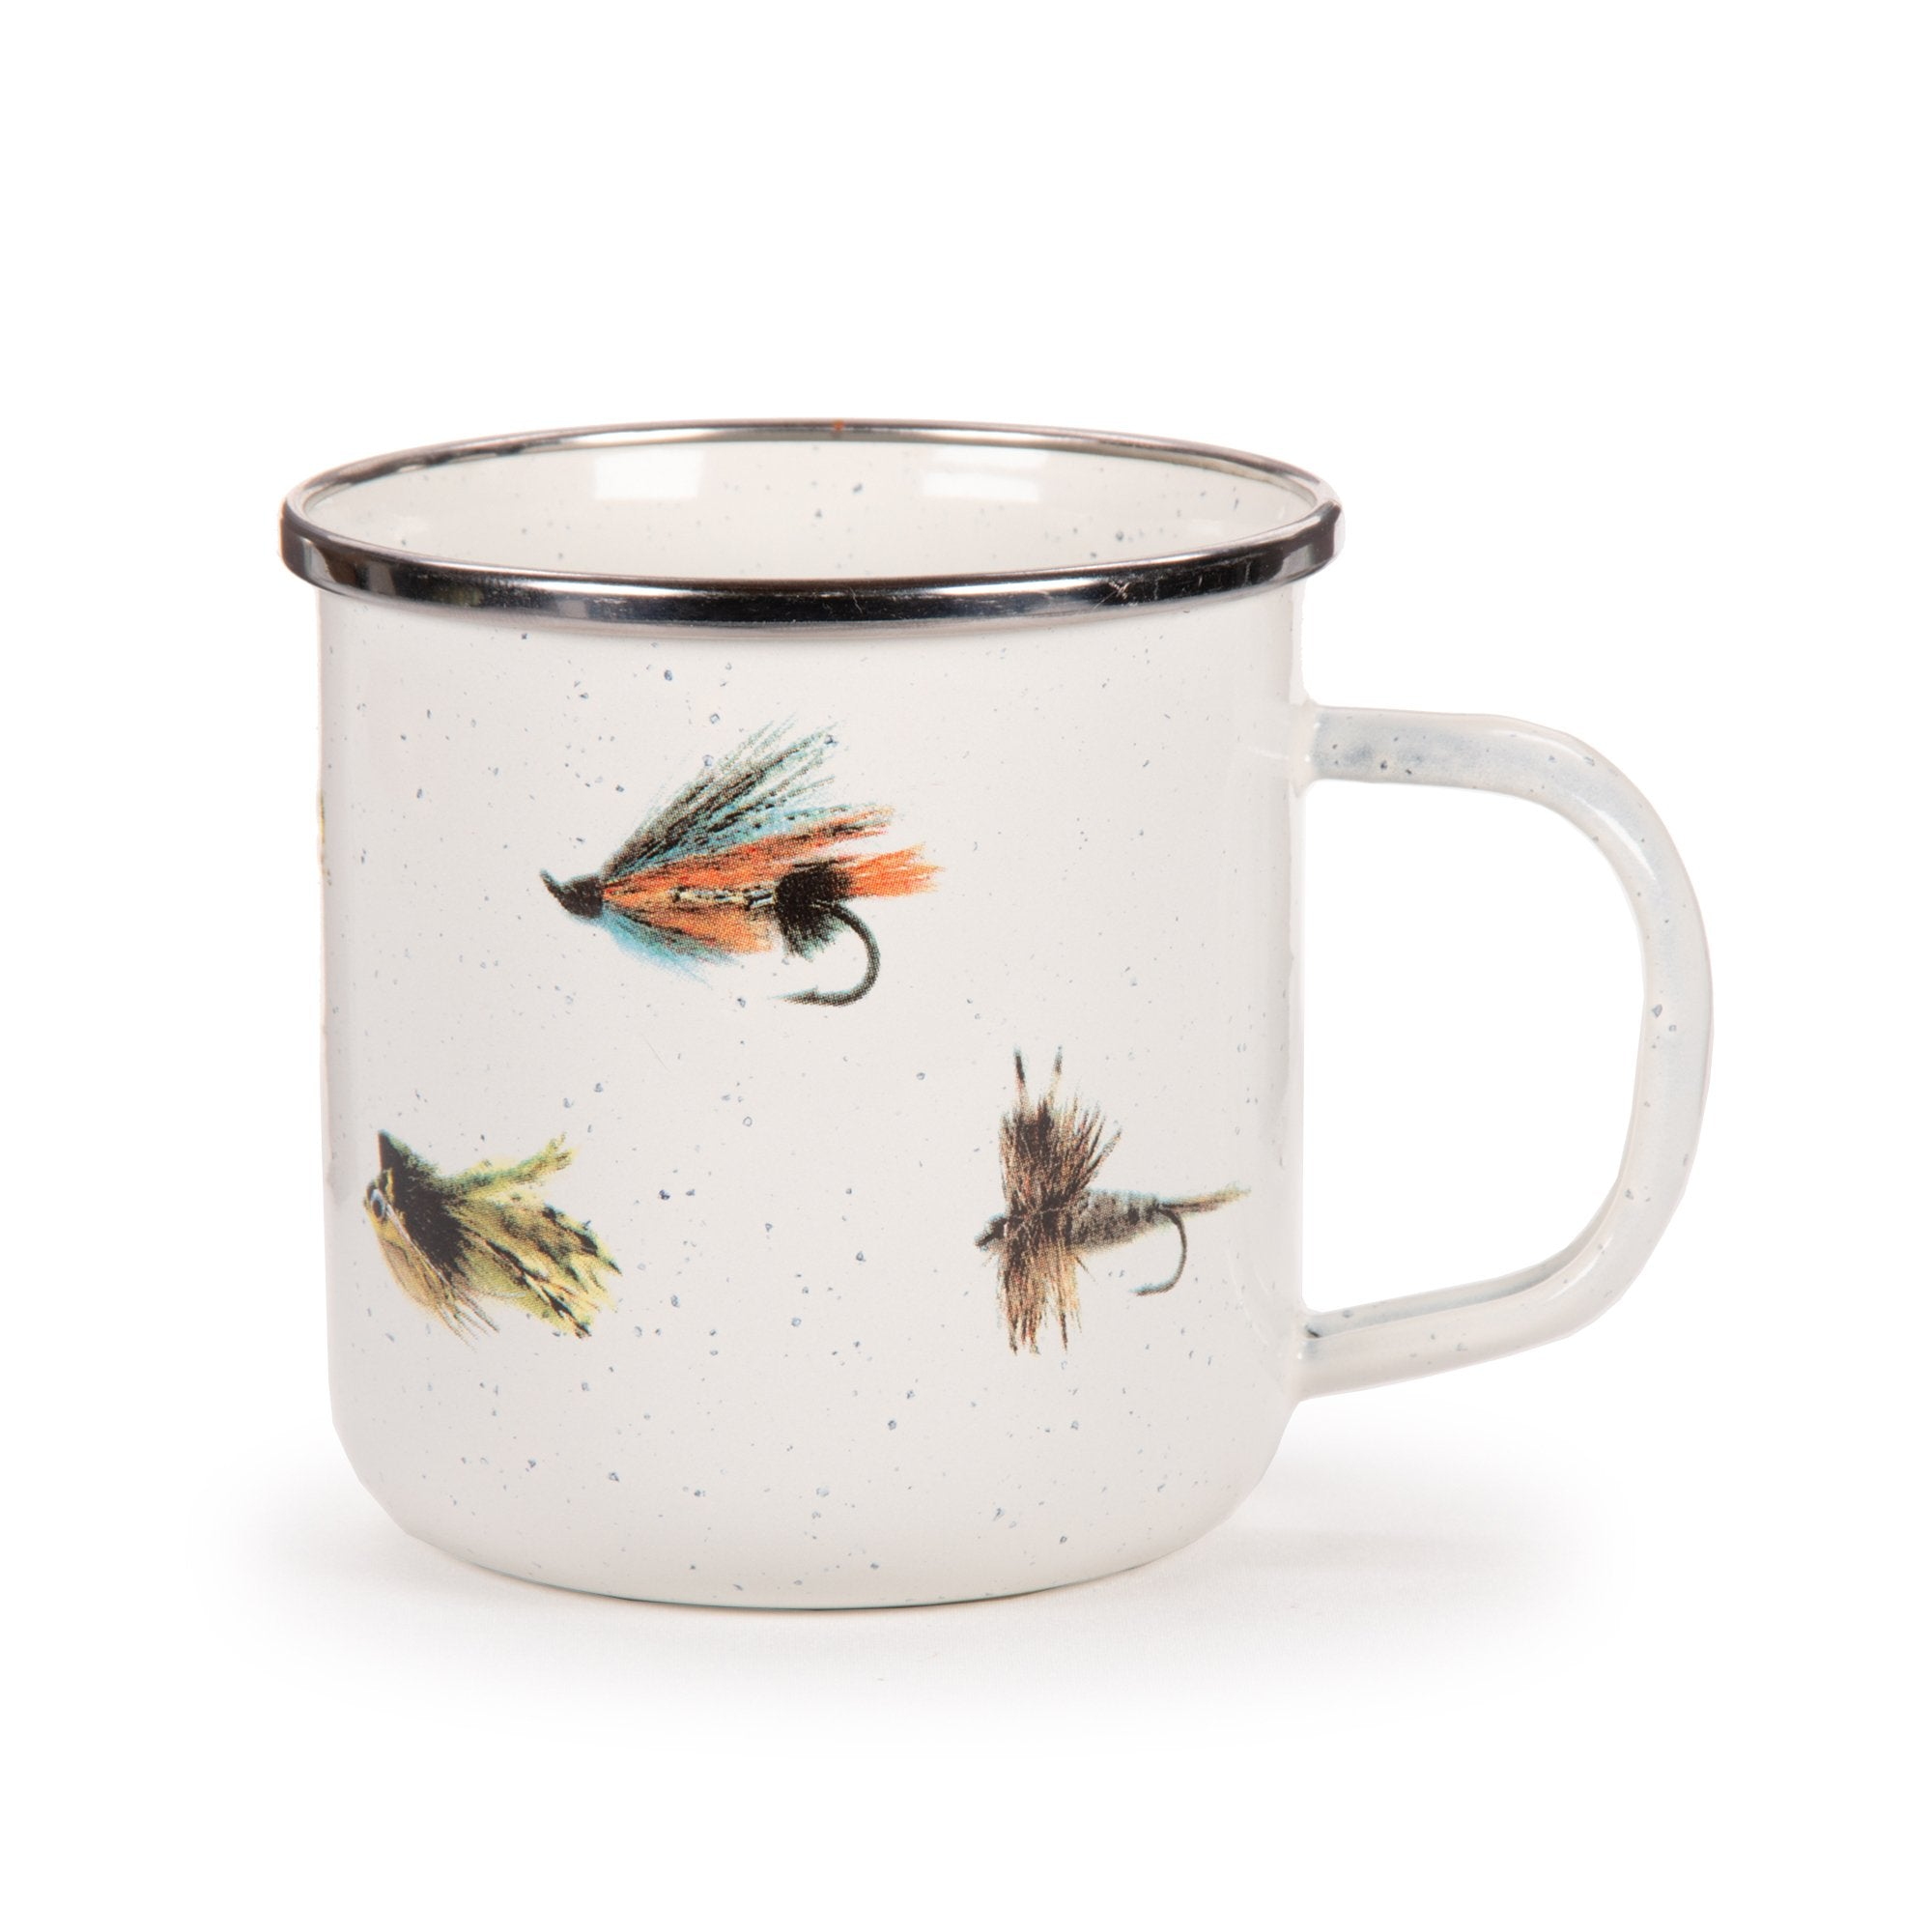 FF28S4 - Set of 4 - Fishing Fly - Enamelware - Grande Mugs by Golden Rabbit